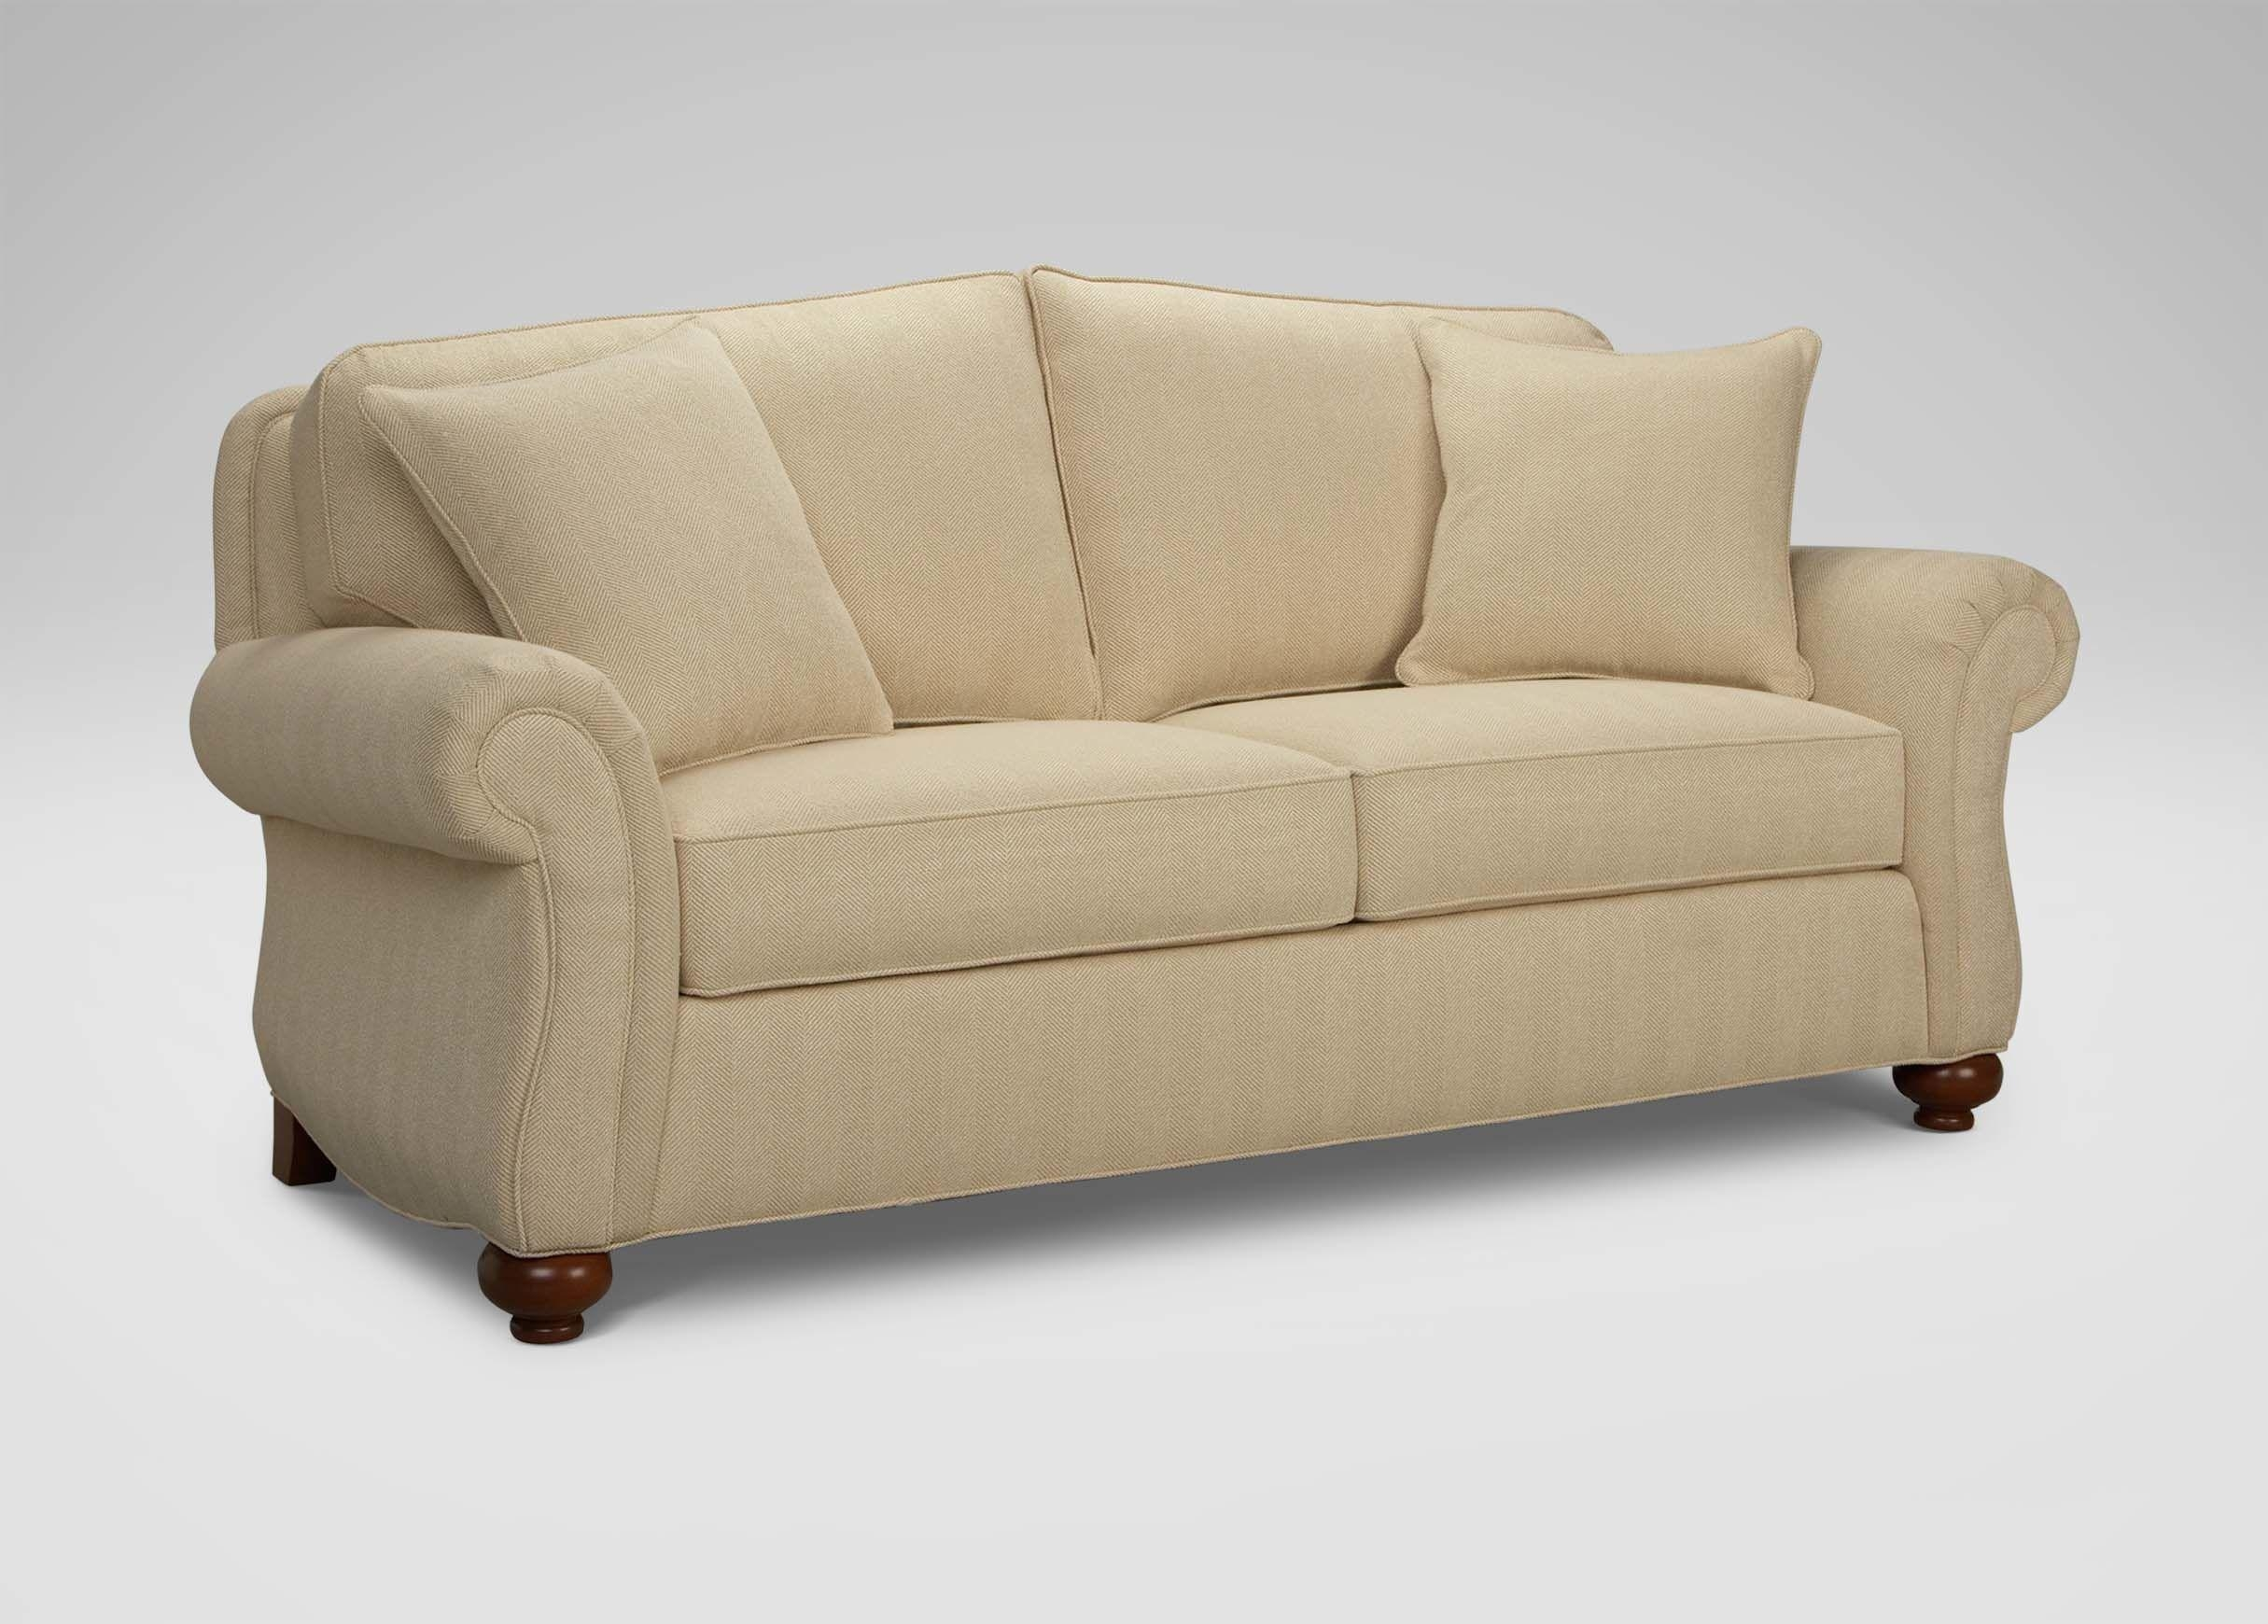 15 Ethan Allen Whitney Sofa | Carehouse in Ethan Allen Whitney Sofas